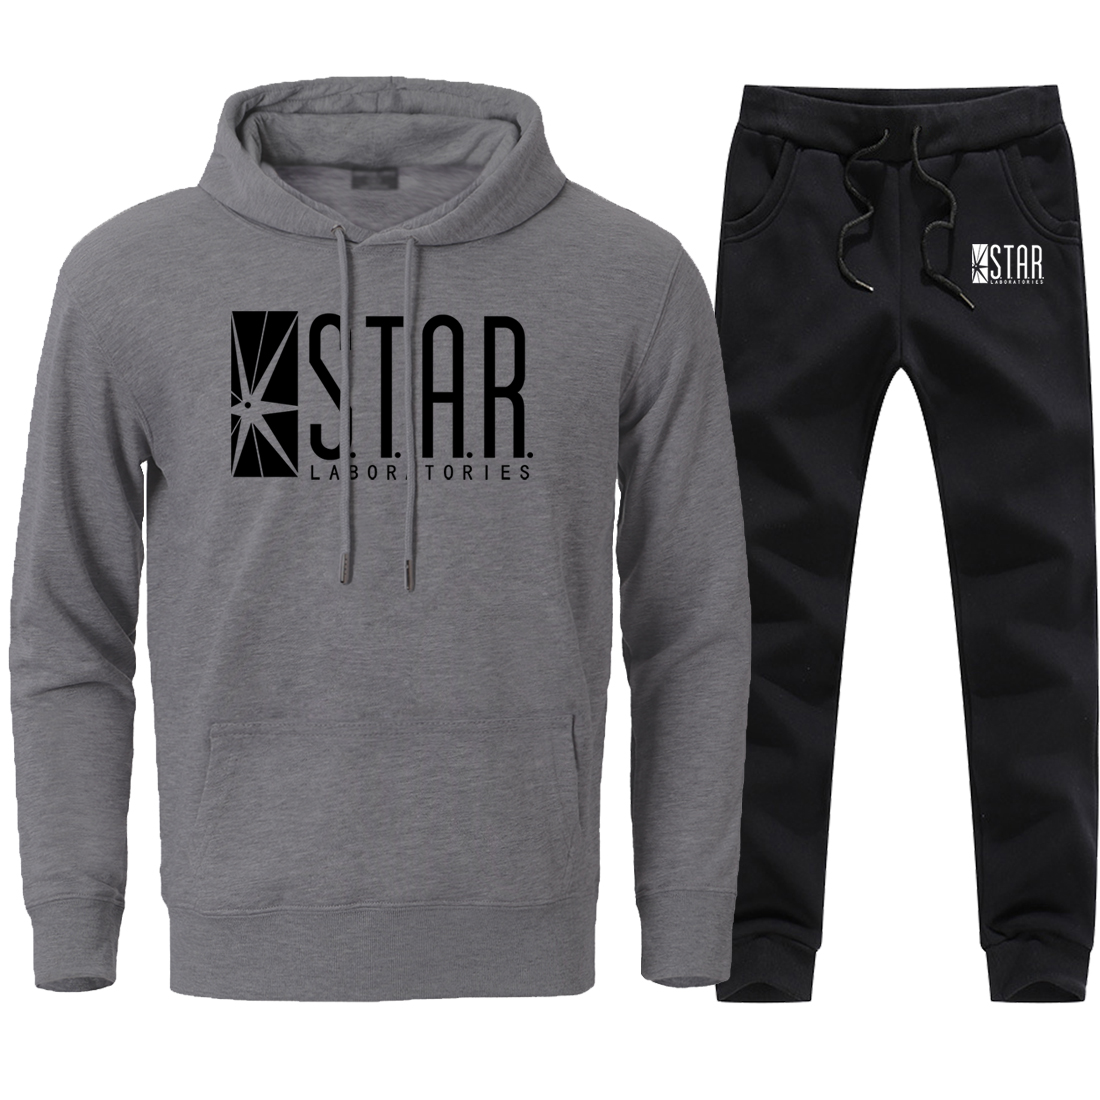 Star Labs Sportswear Tracksuits For Man Autumn Winter Fleece Warm Hoodies Pullover + Full Length Pant 2020 Hot Sell Fitness Suit